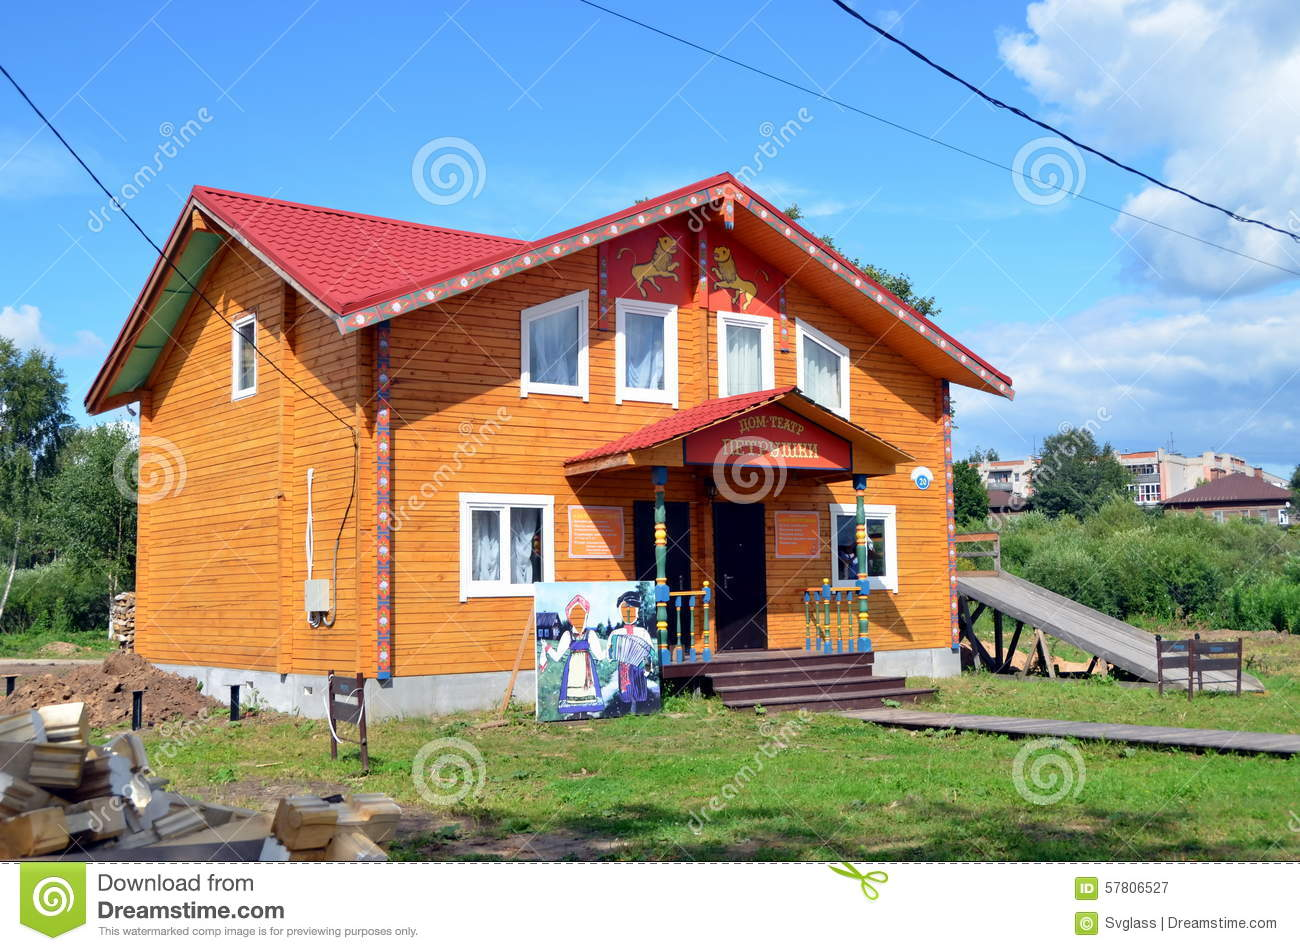 New Wooden House For Sale Editorial Photography Image